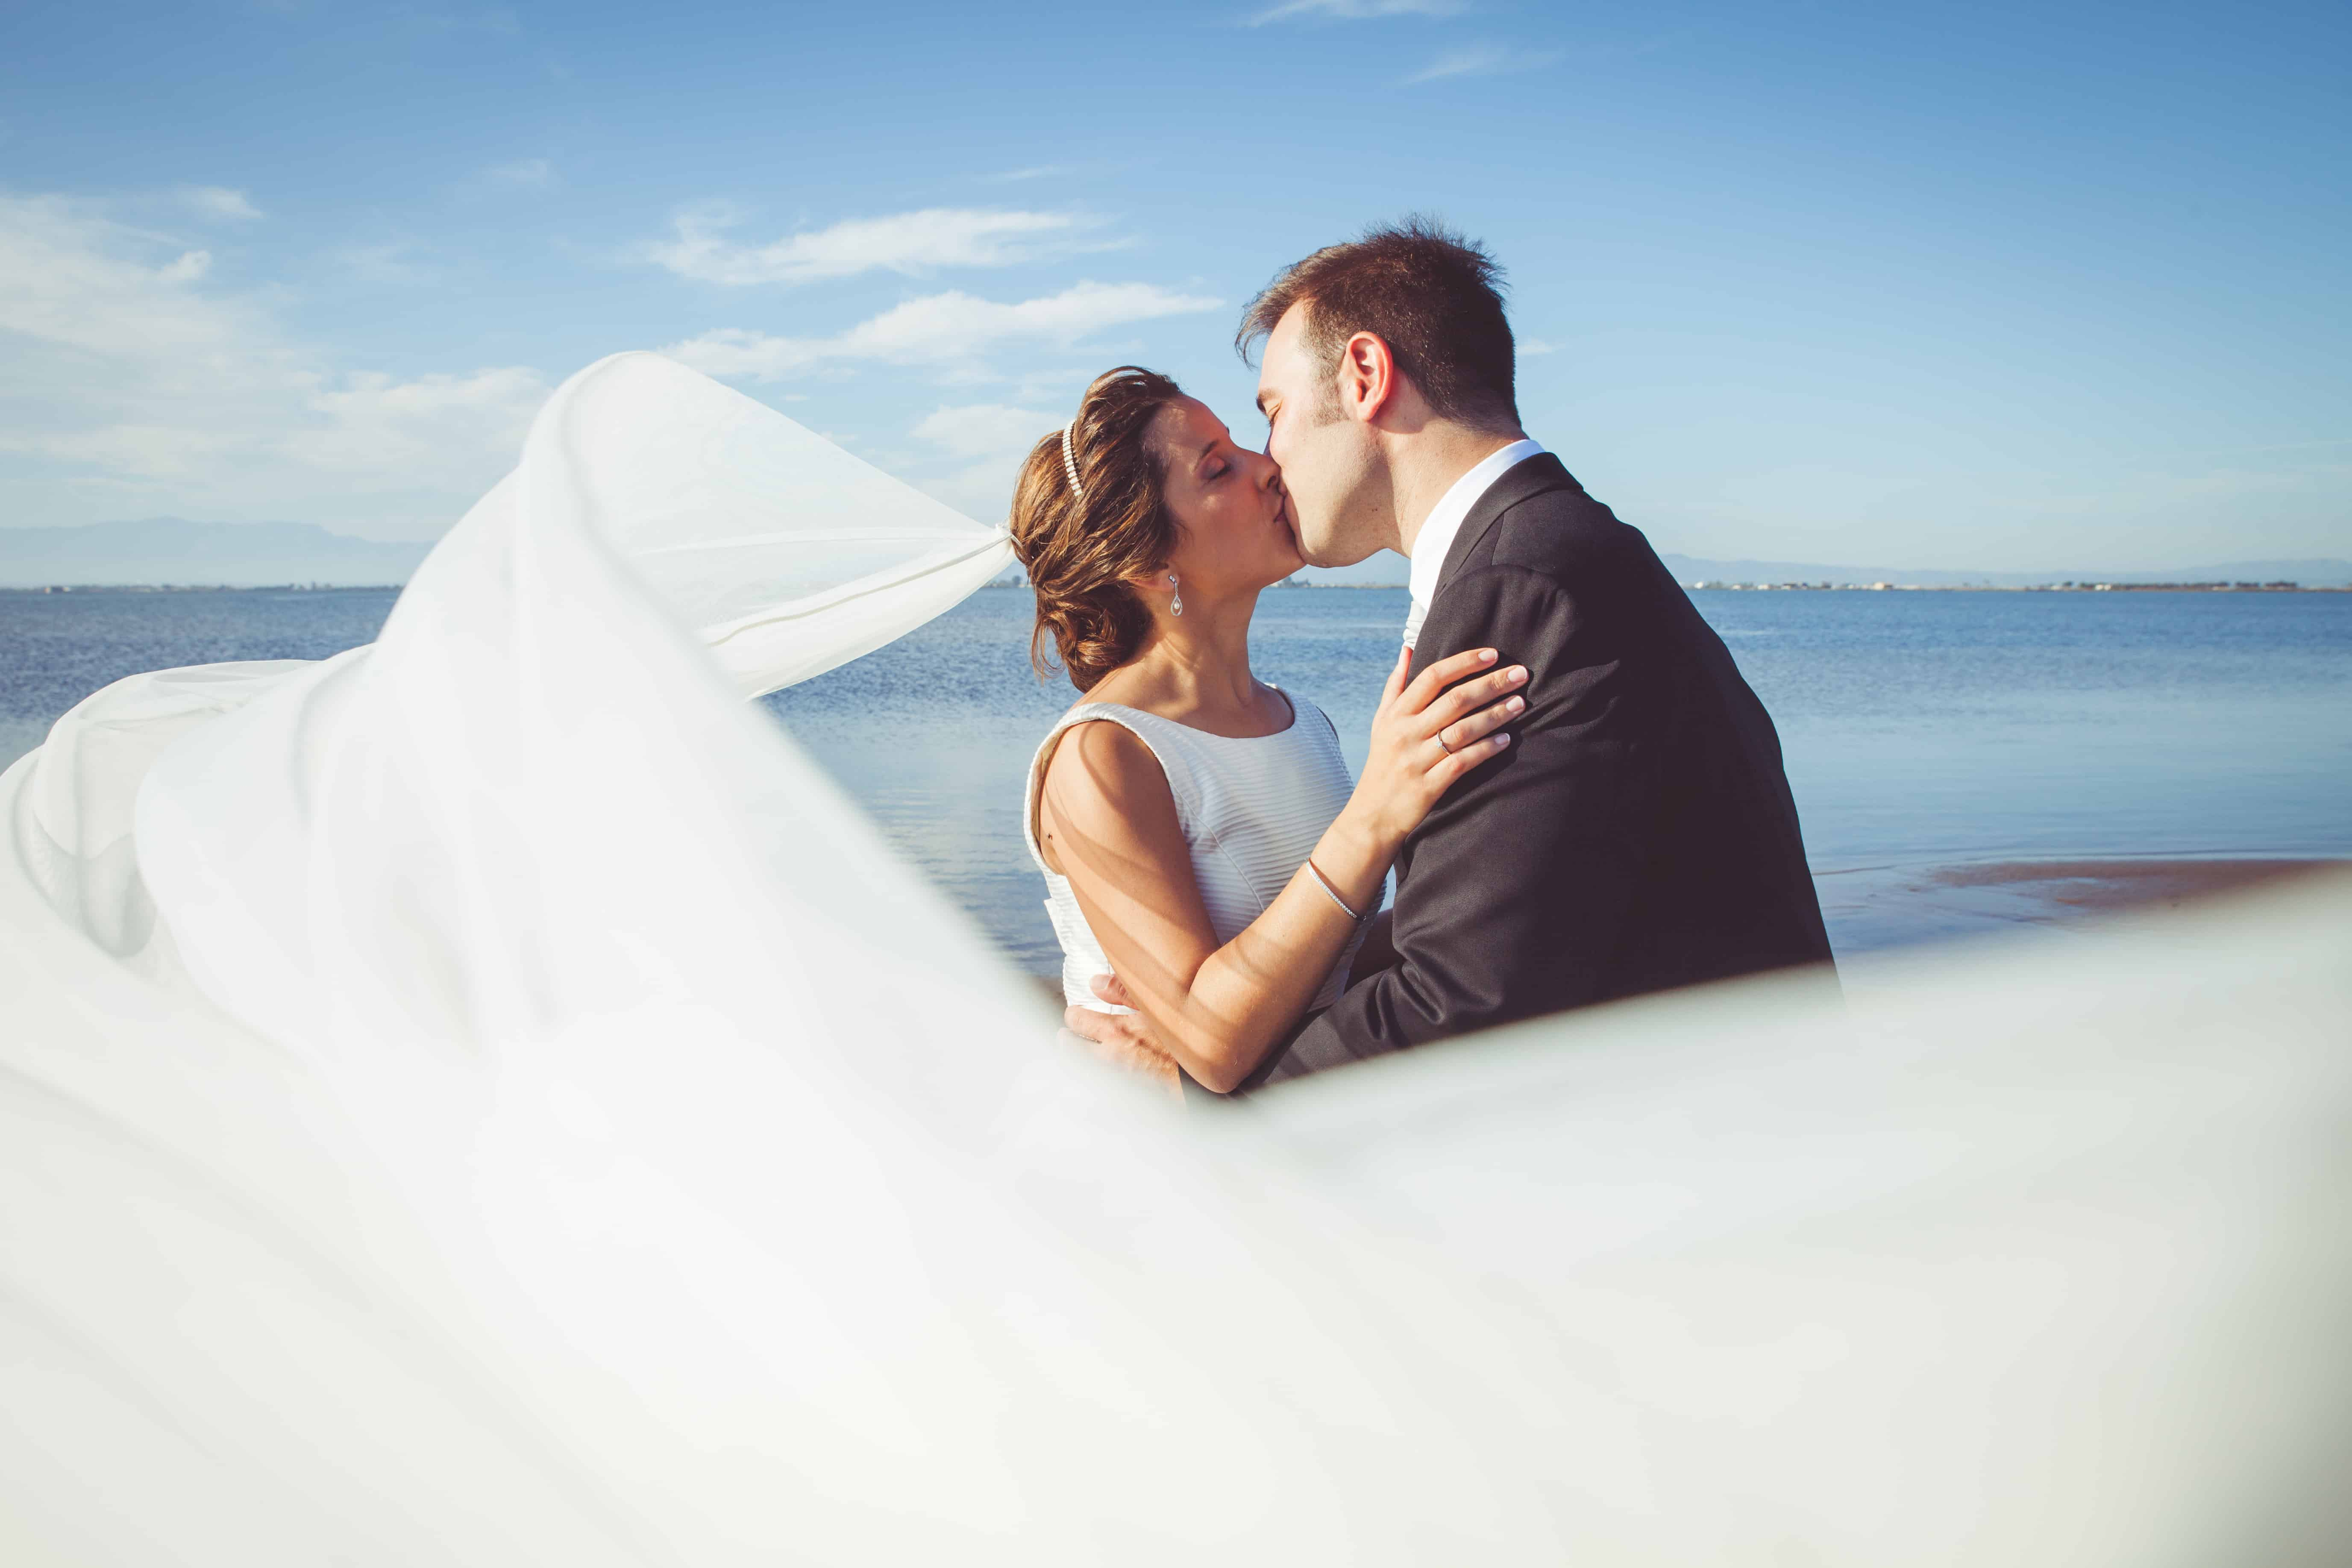 Couple getting married in Spain - Small Wedding package all inclusive